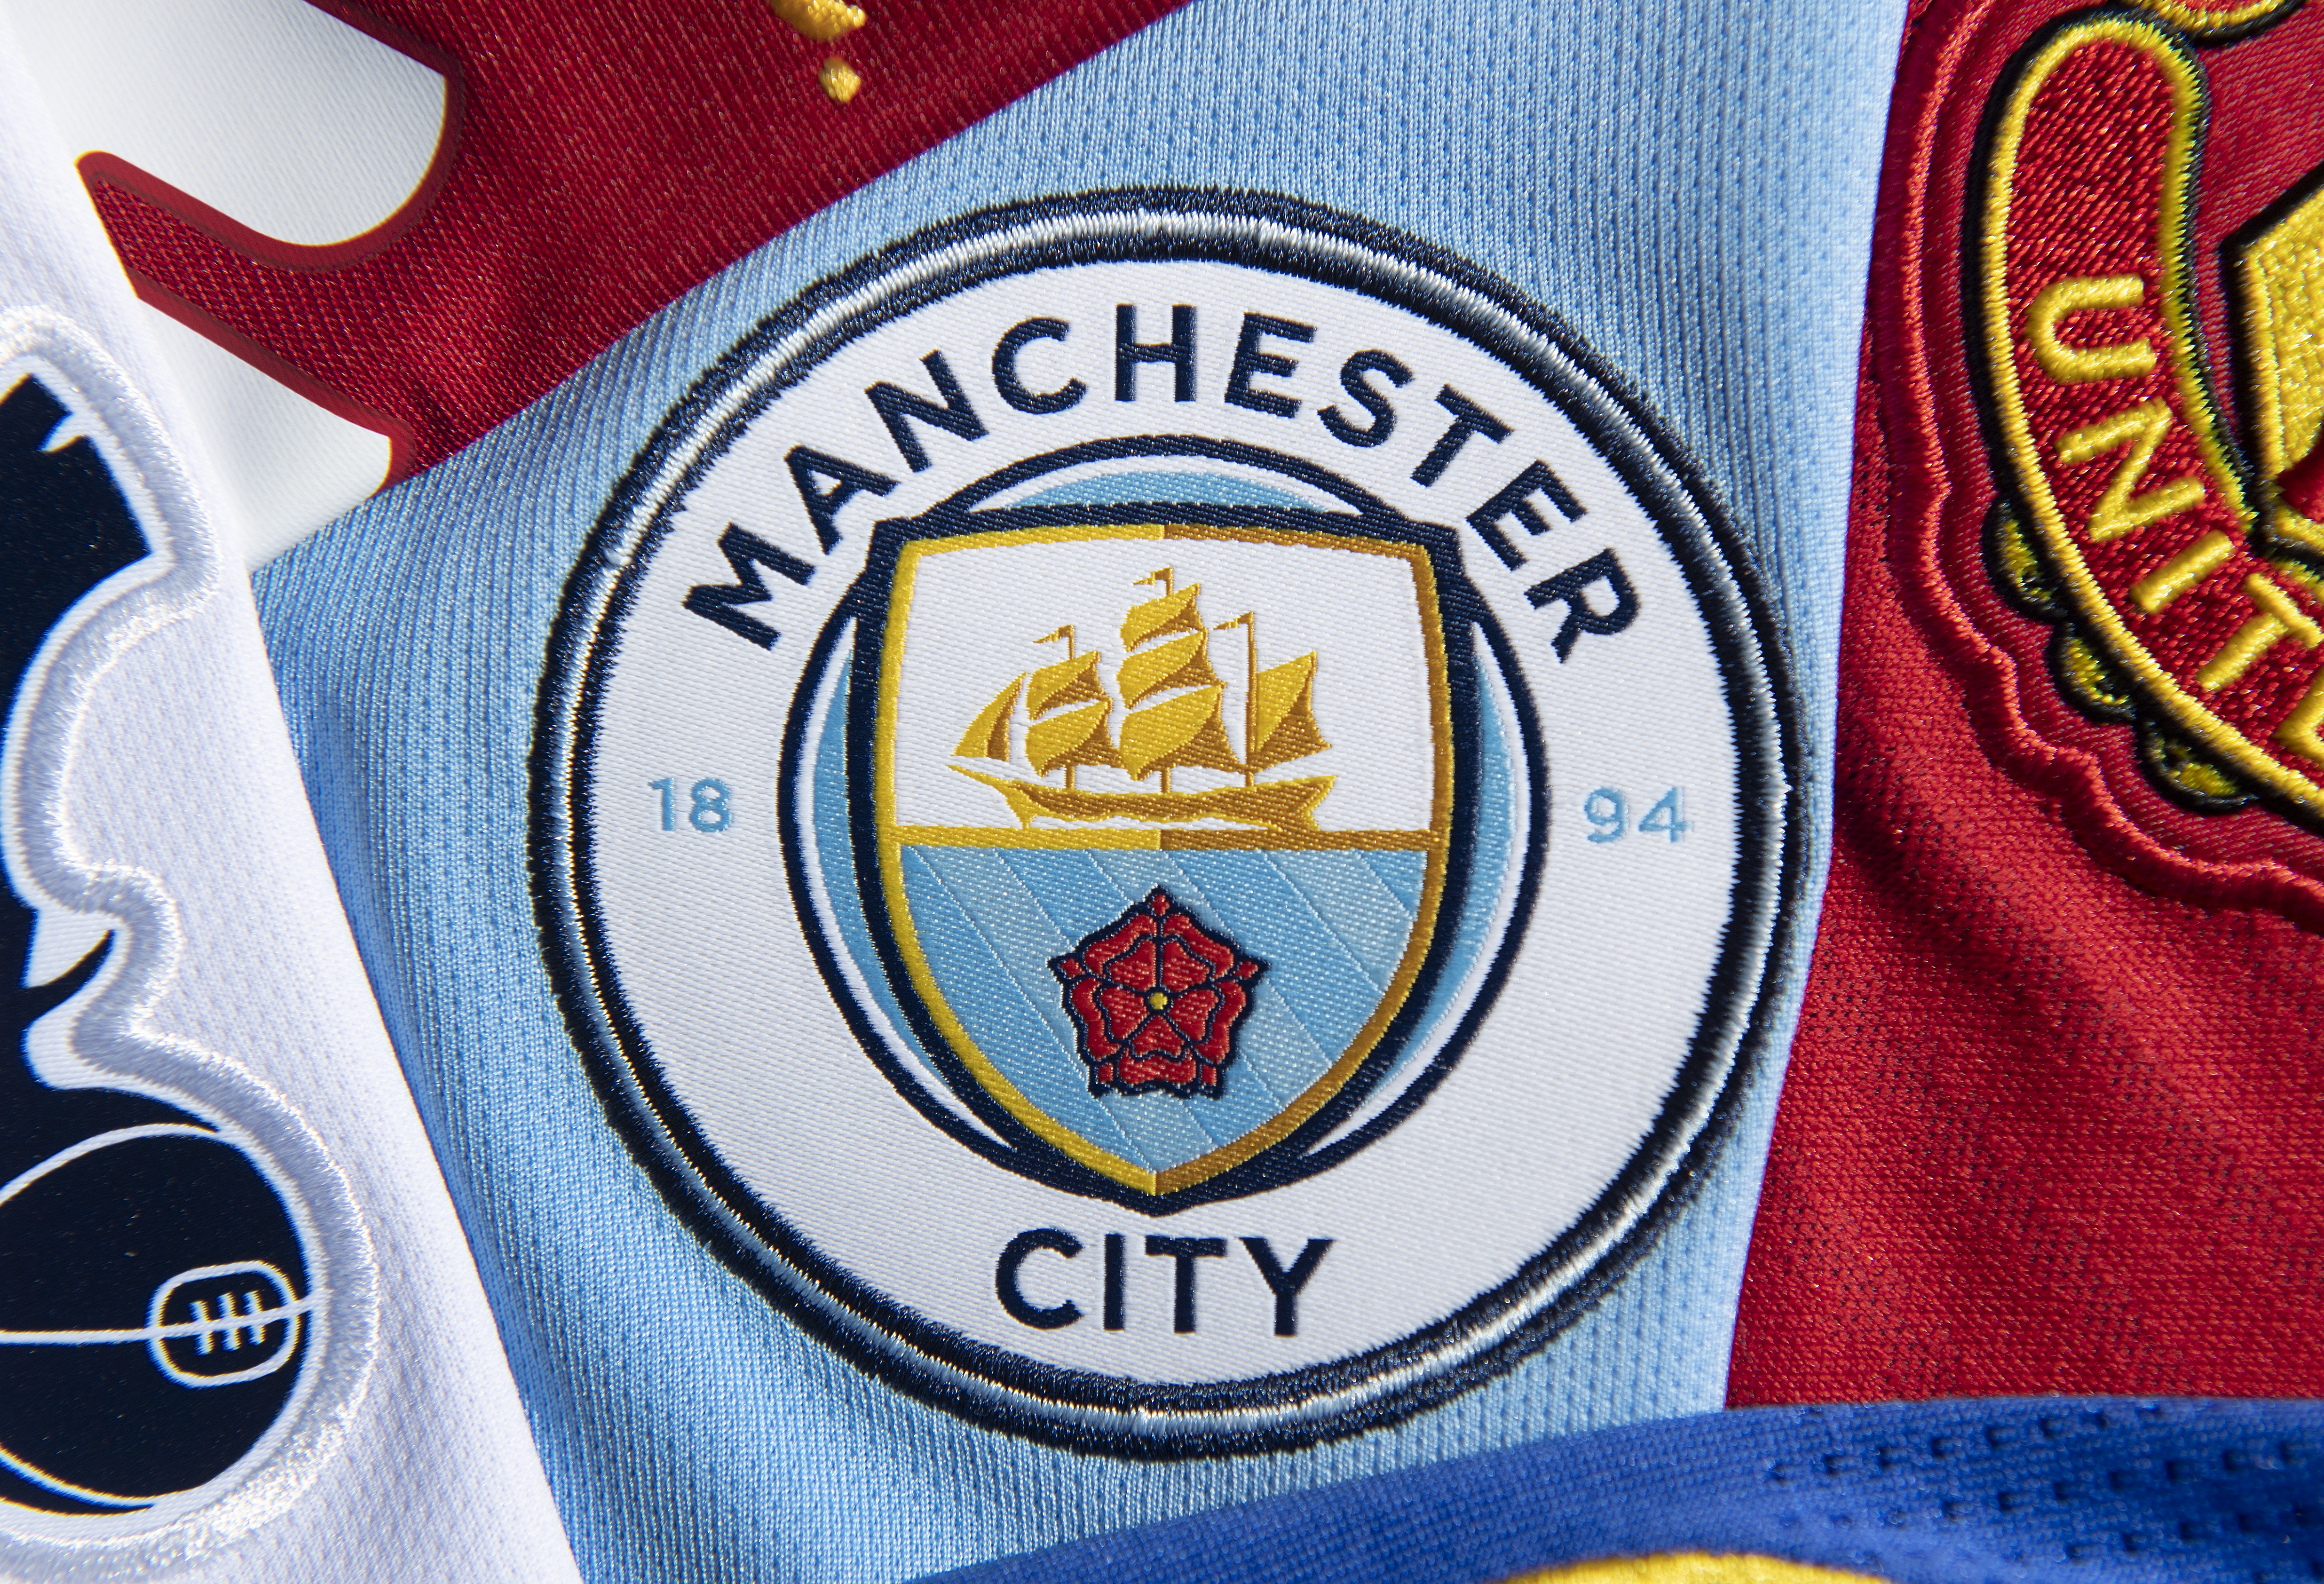 The Manchester City Club Badge